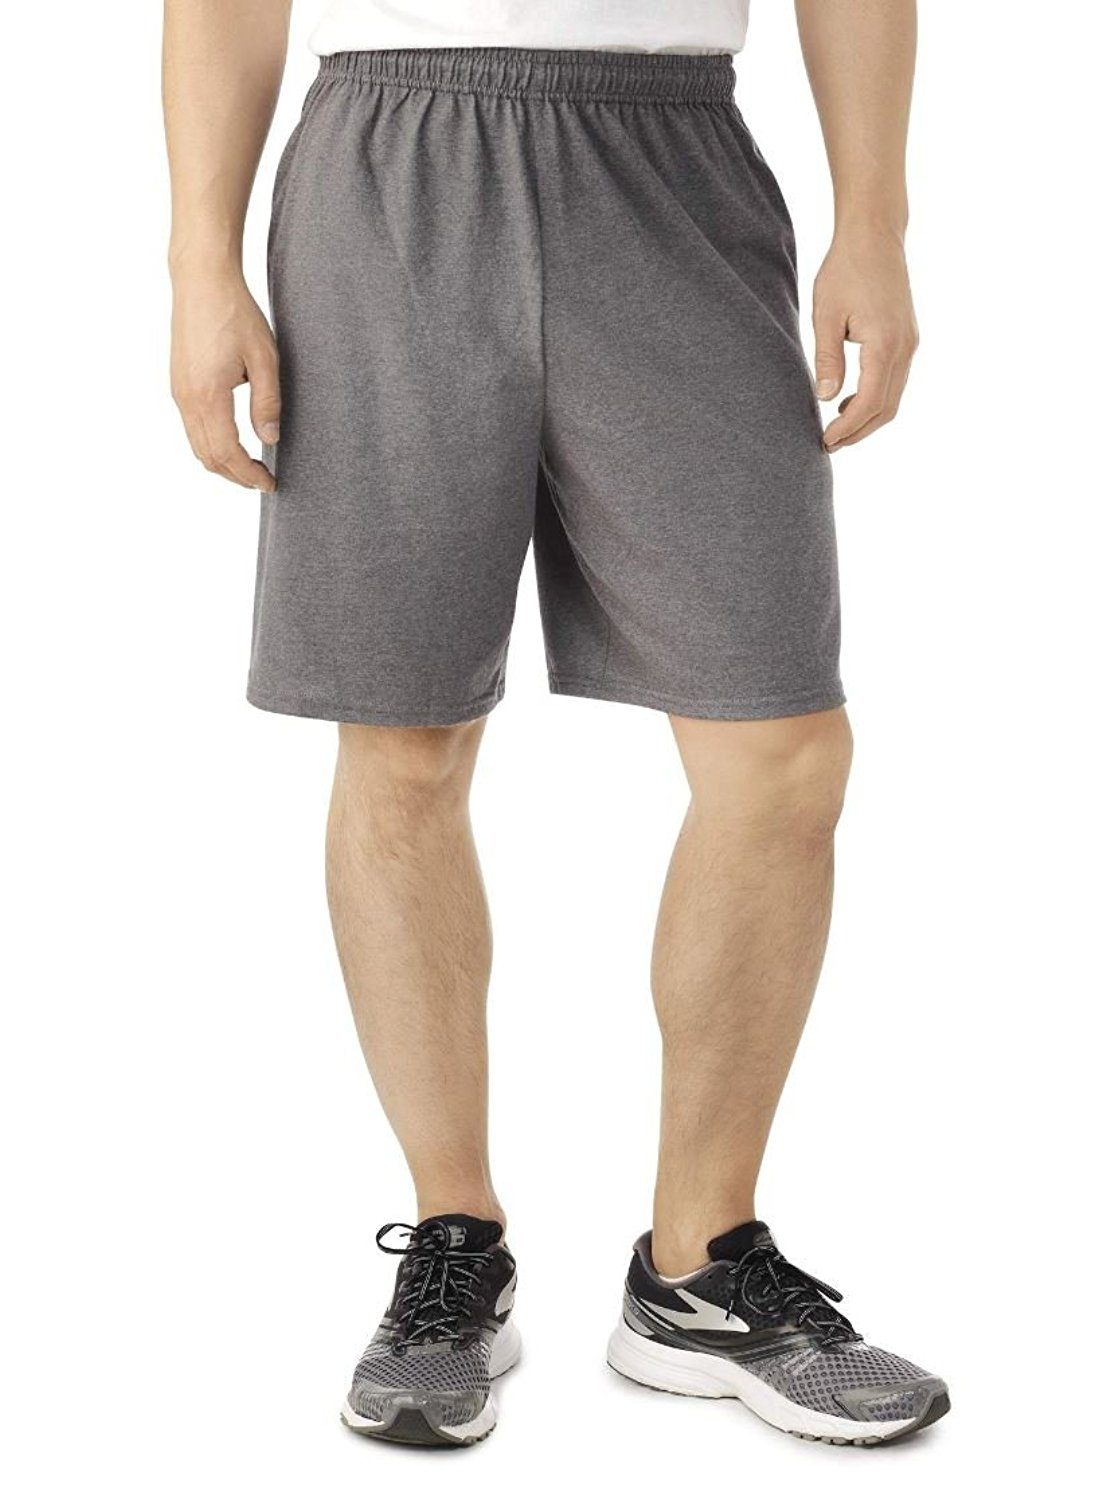 Fruit of the Loom Men's Jersey Shorts with Side Pockets